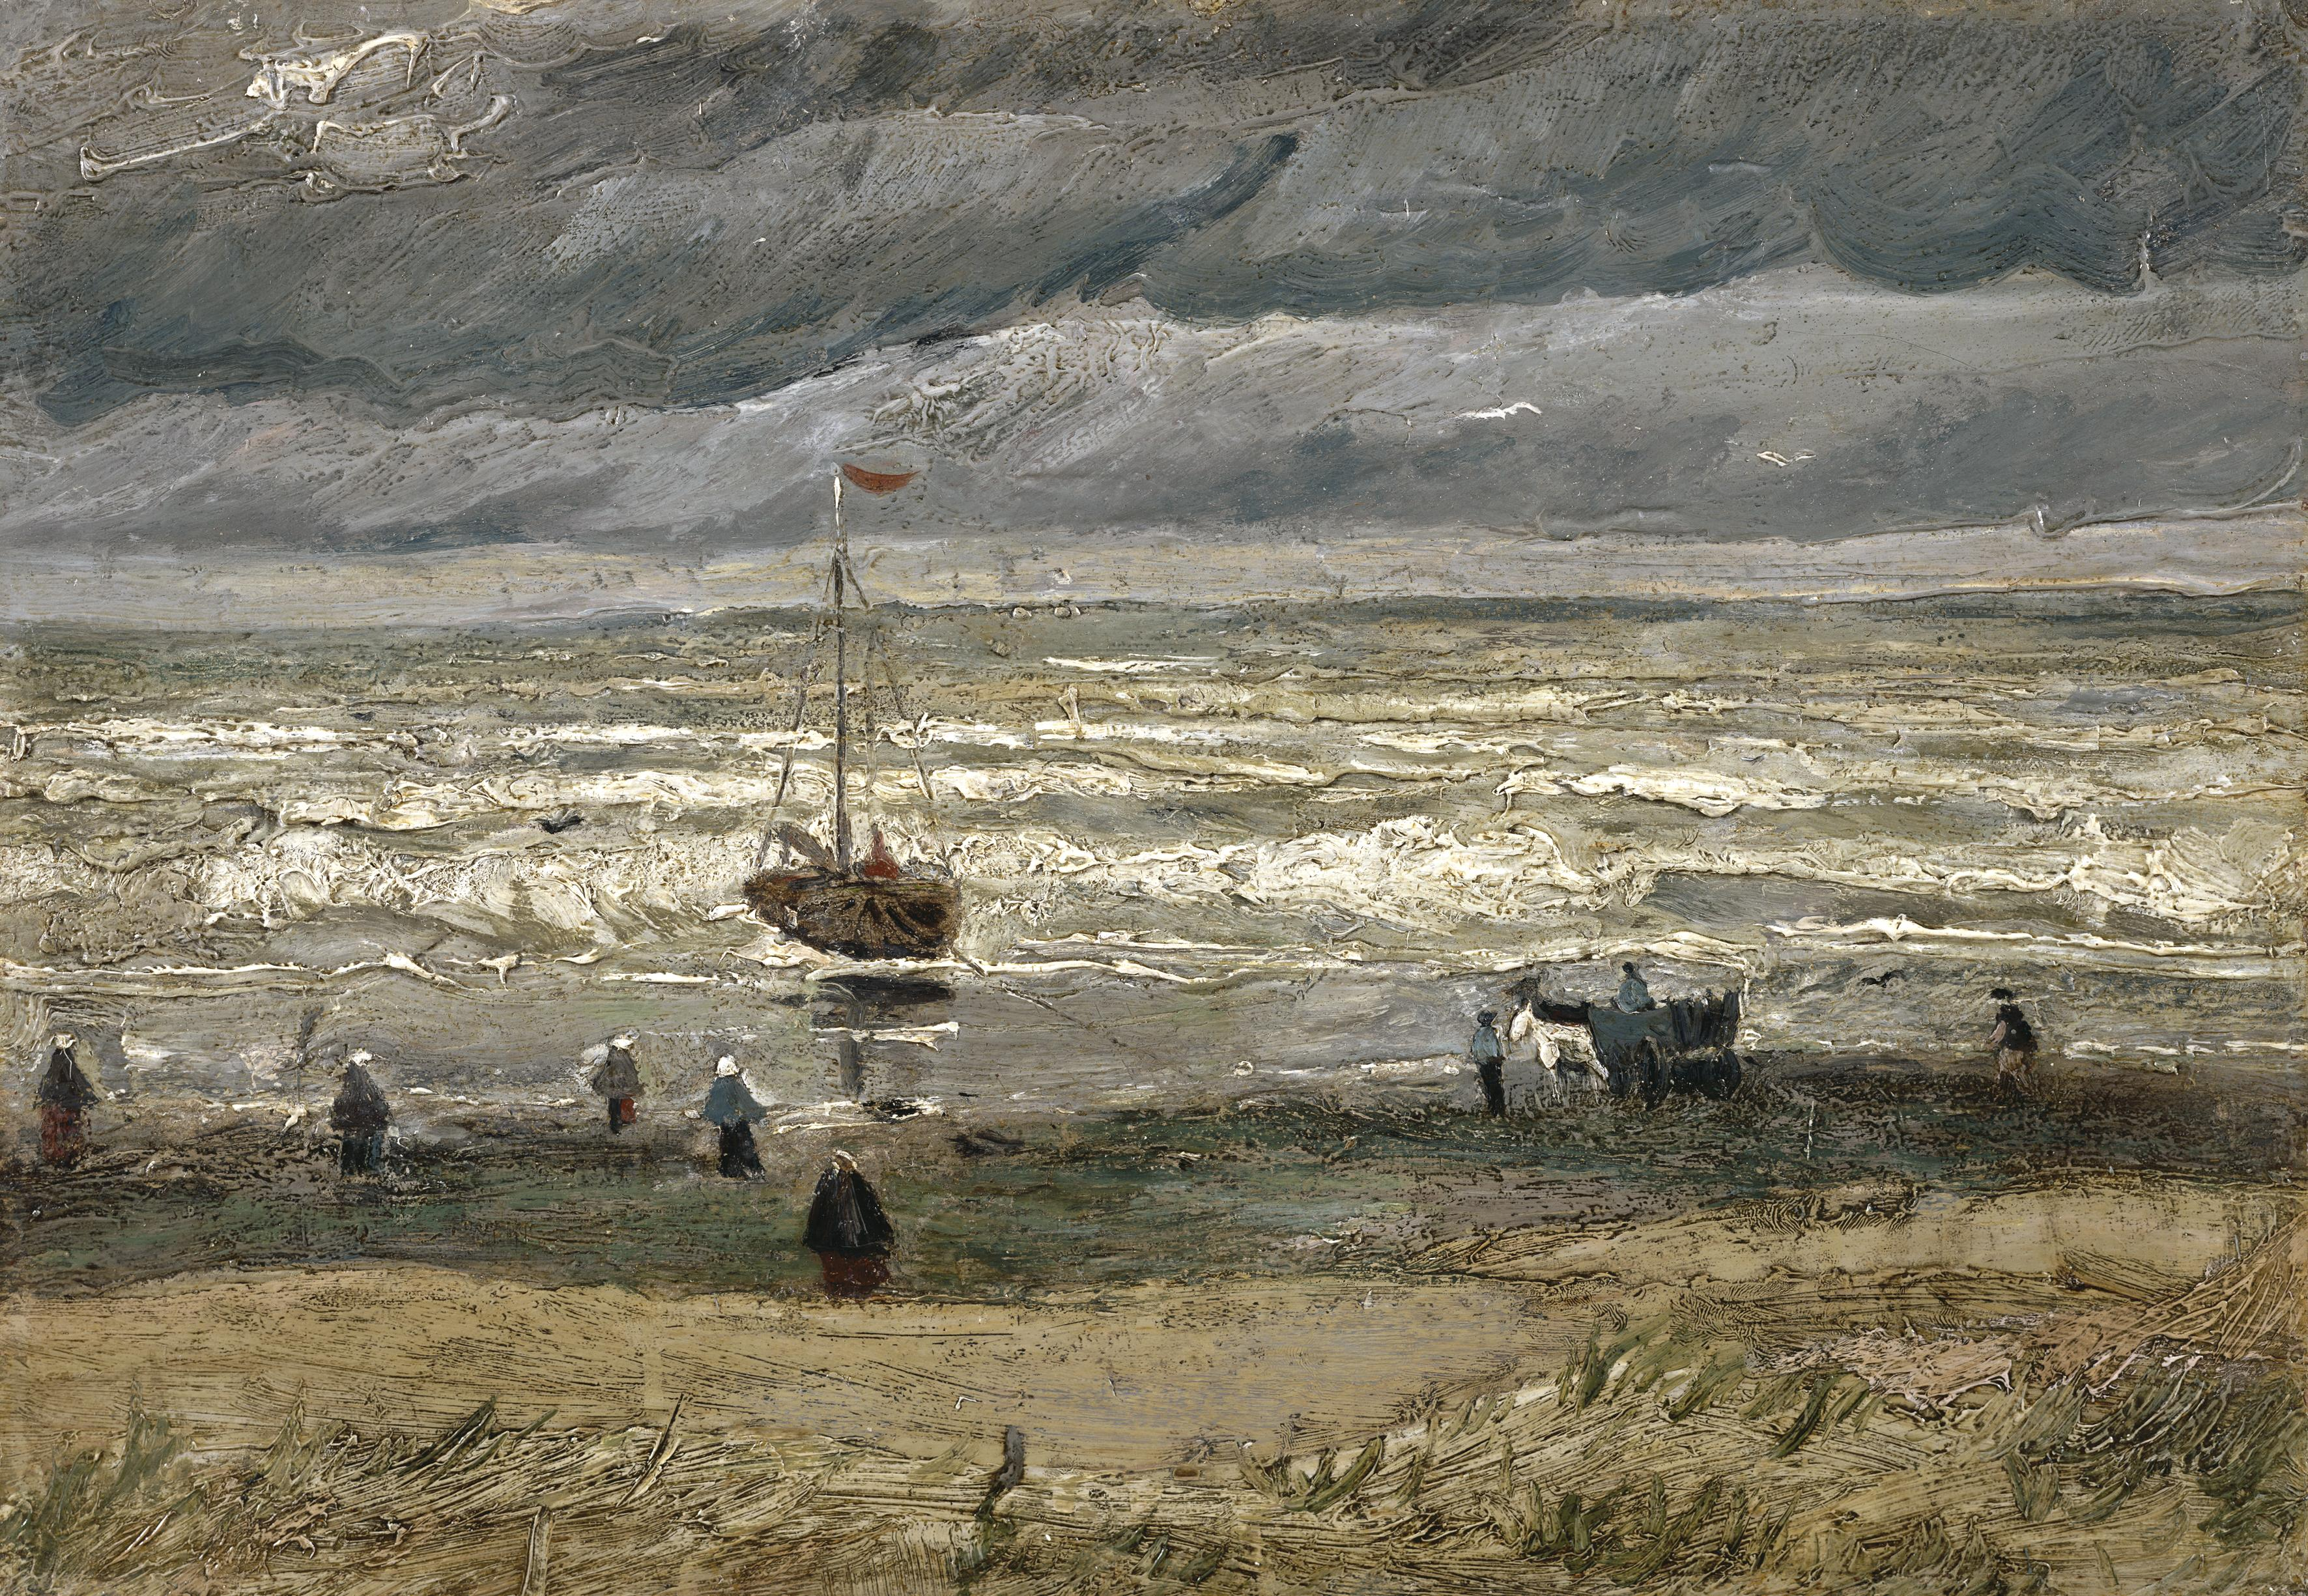 http://www.thehistoryblog.com/wp-content/uploads/2016/09/Vincent-van-Gogh-View-of-the-Sea-at-Scheveningen-1882.jpg